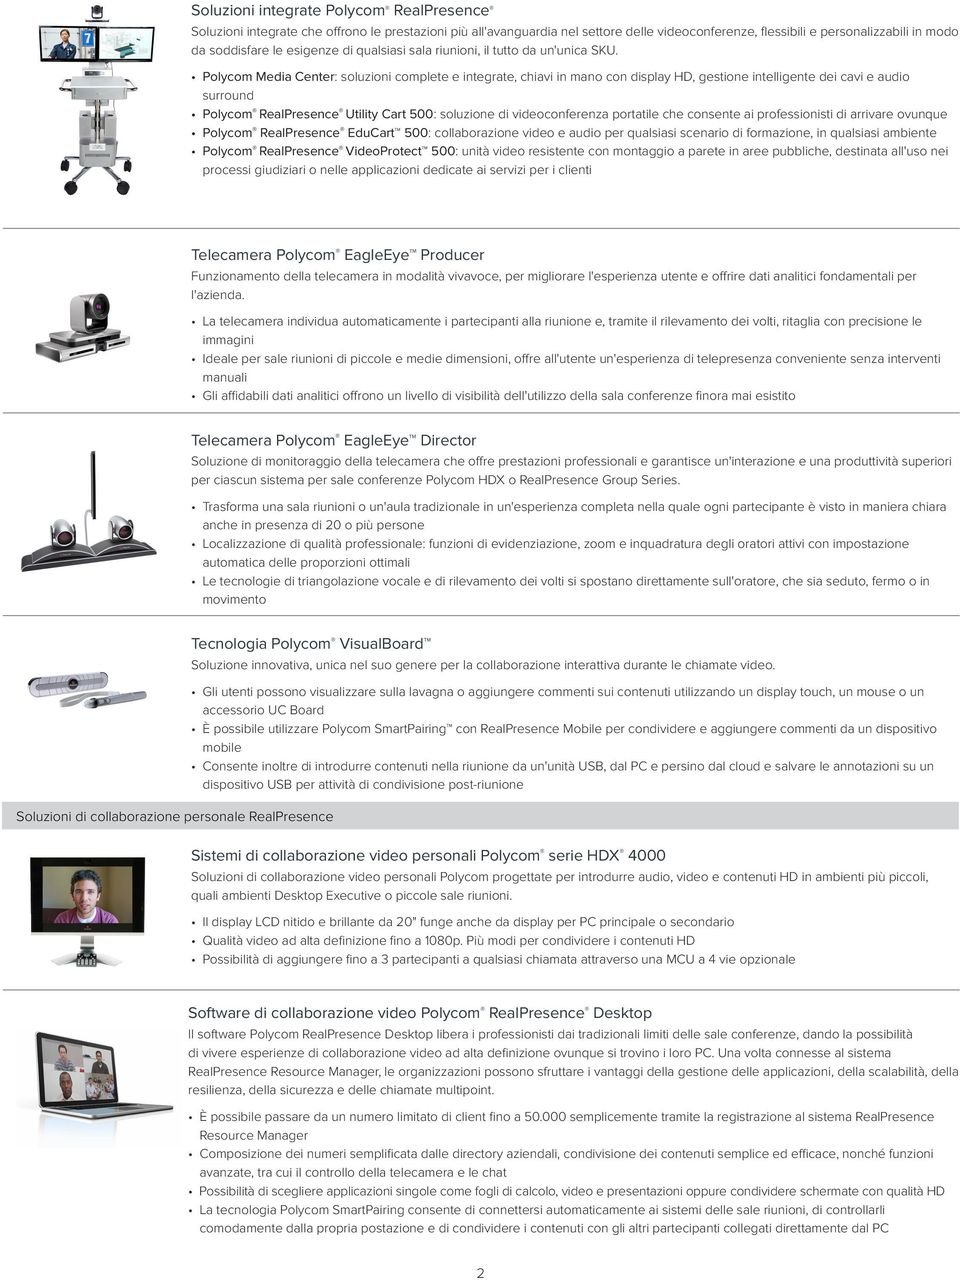 Polycom Media Center: soluzioni complete e integrate, chiavi in mano con display HD, gestione intelligente dei cavi e audio surround Polycom RealPresence Utility Cart 500: soluzione di